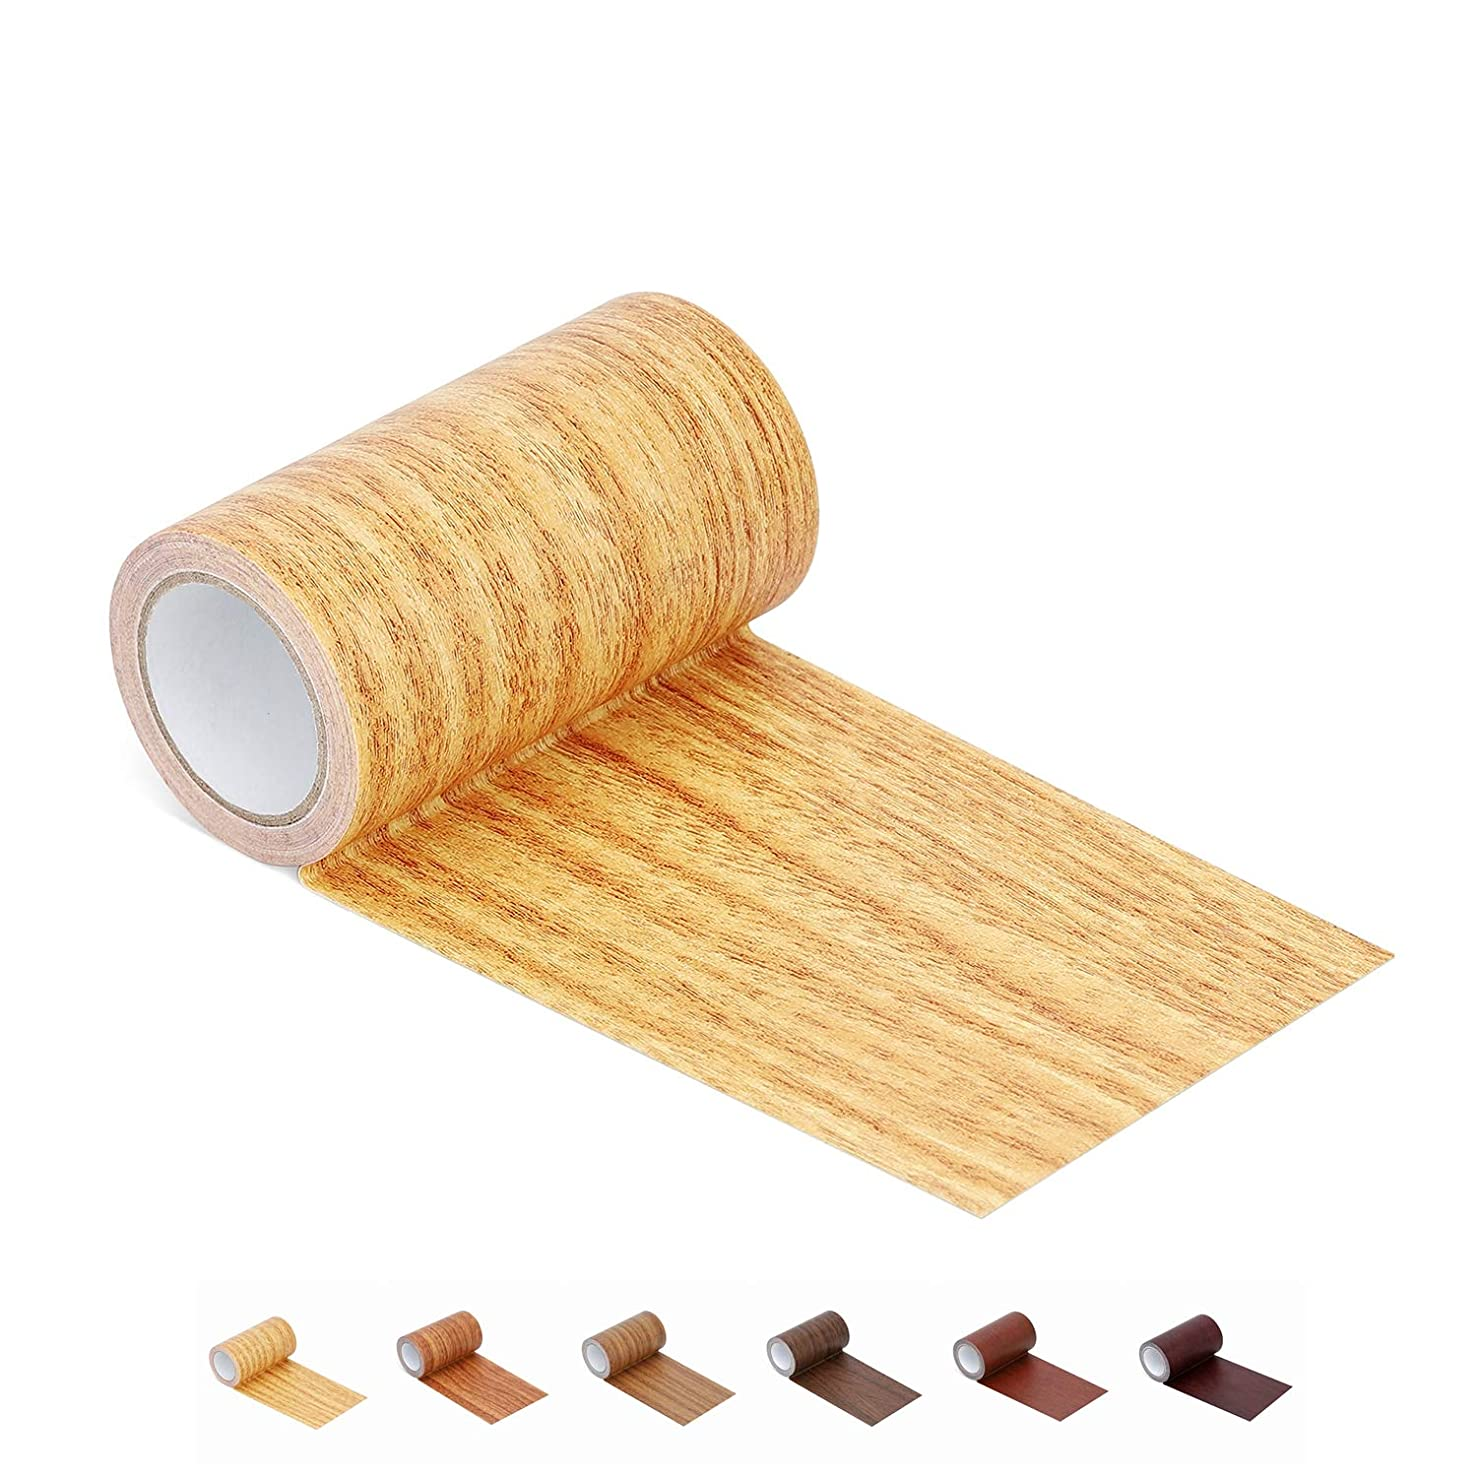 """Onine Repair Tape Patch Wood Textured Adhesive for Door Floor Tables and Chairs (2.4""""X15', Natural Oak)"""